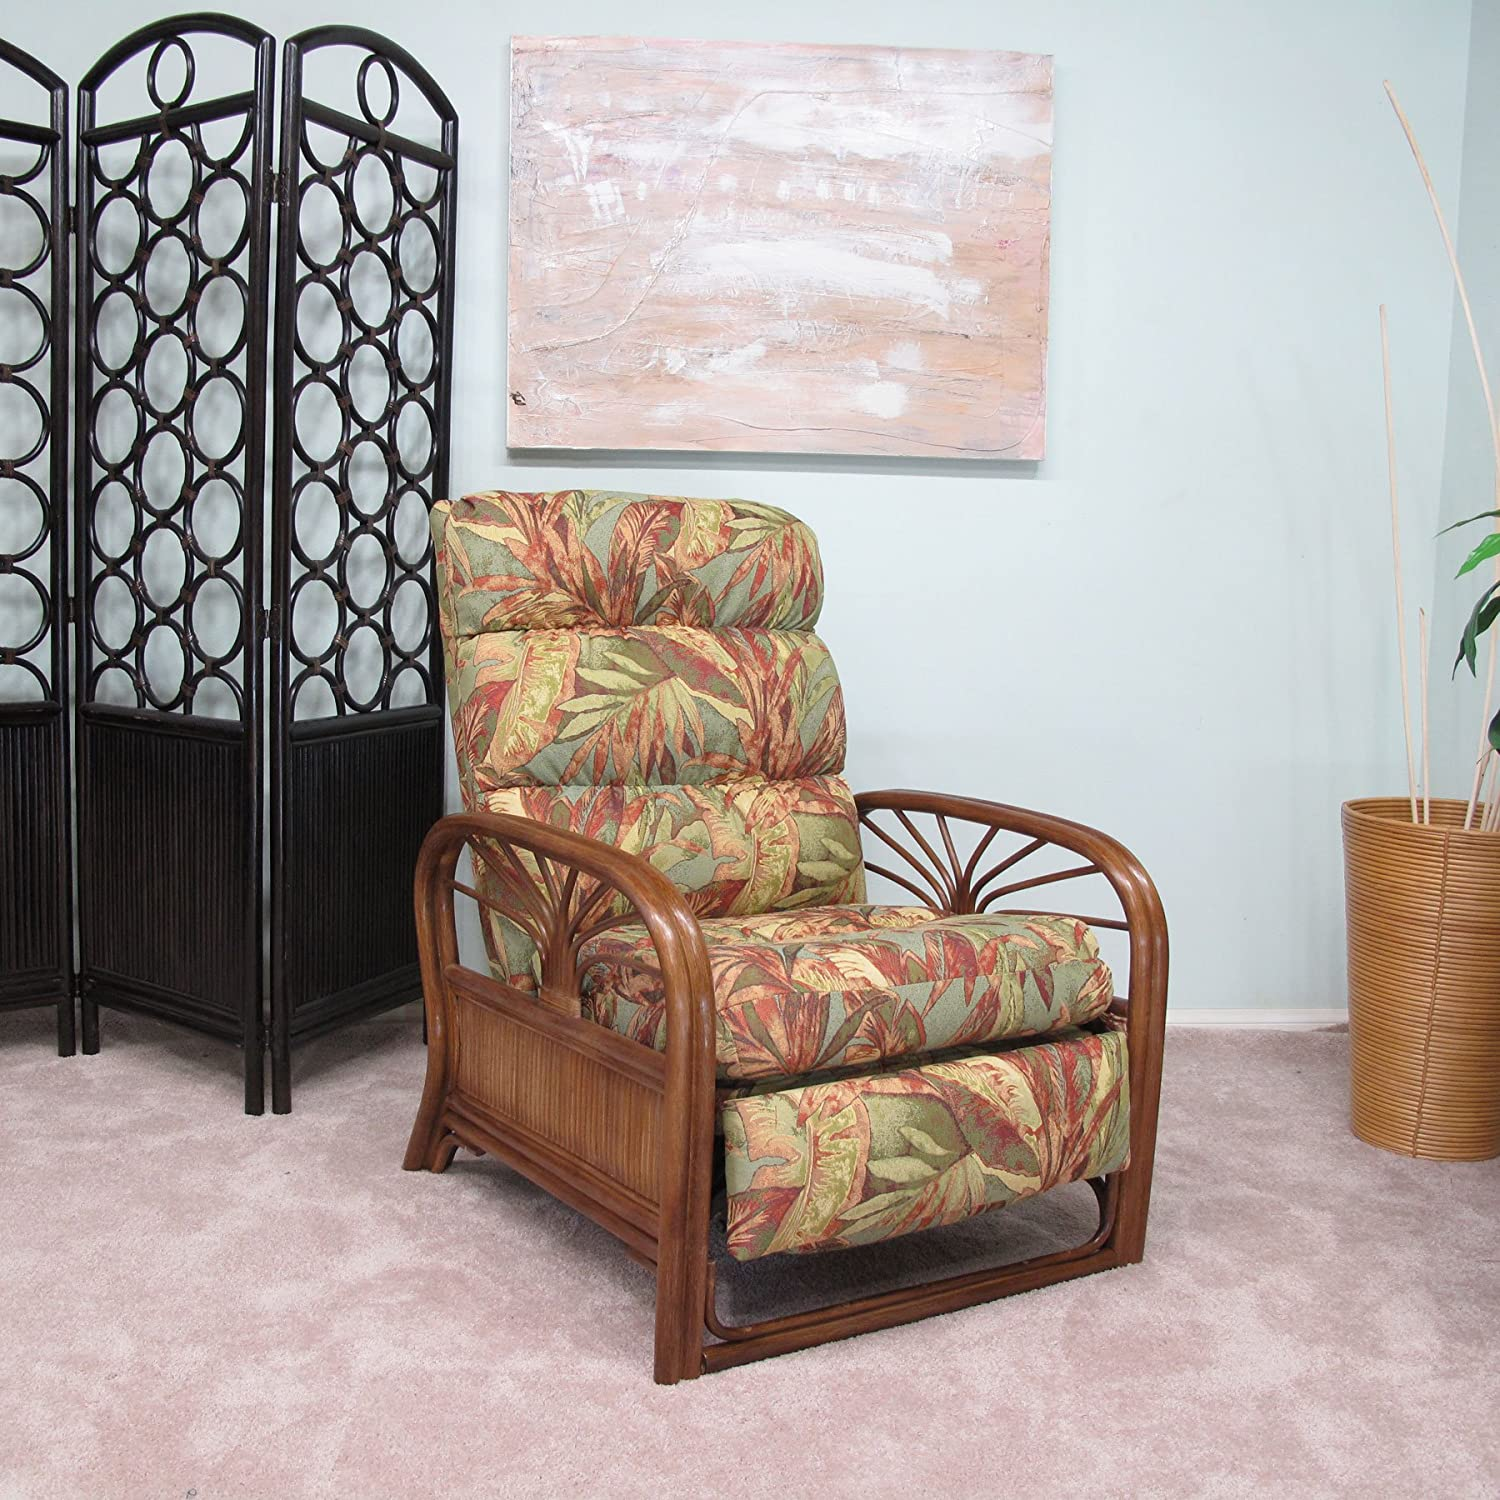 Max 55% OFF Urban Design Furnishings Max 40% OFF Sundance Rattan in Chair Recliner Made